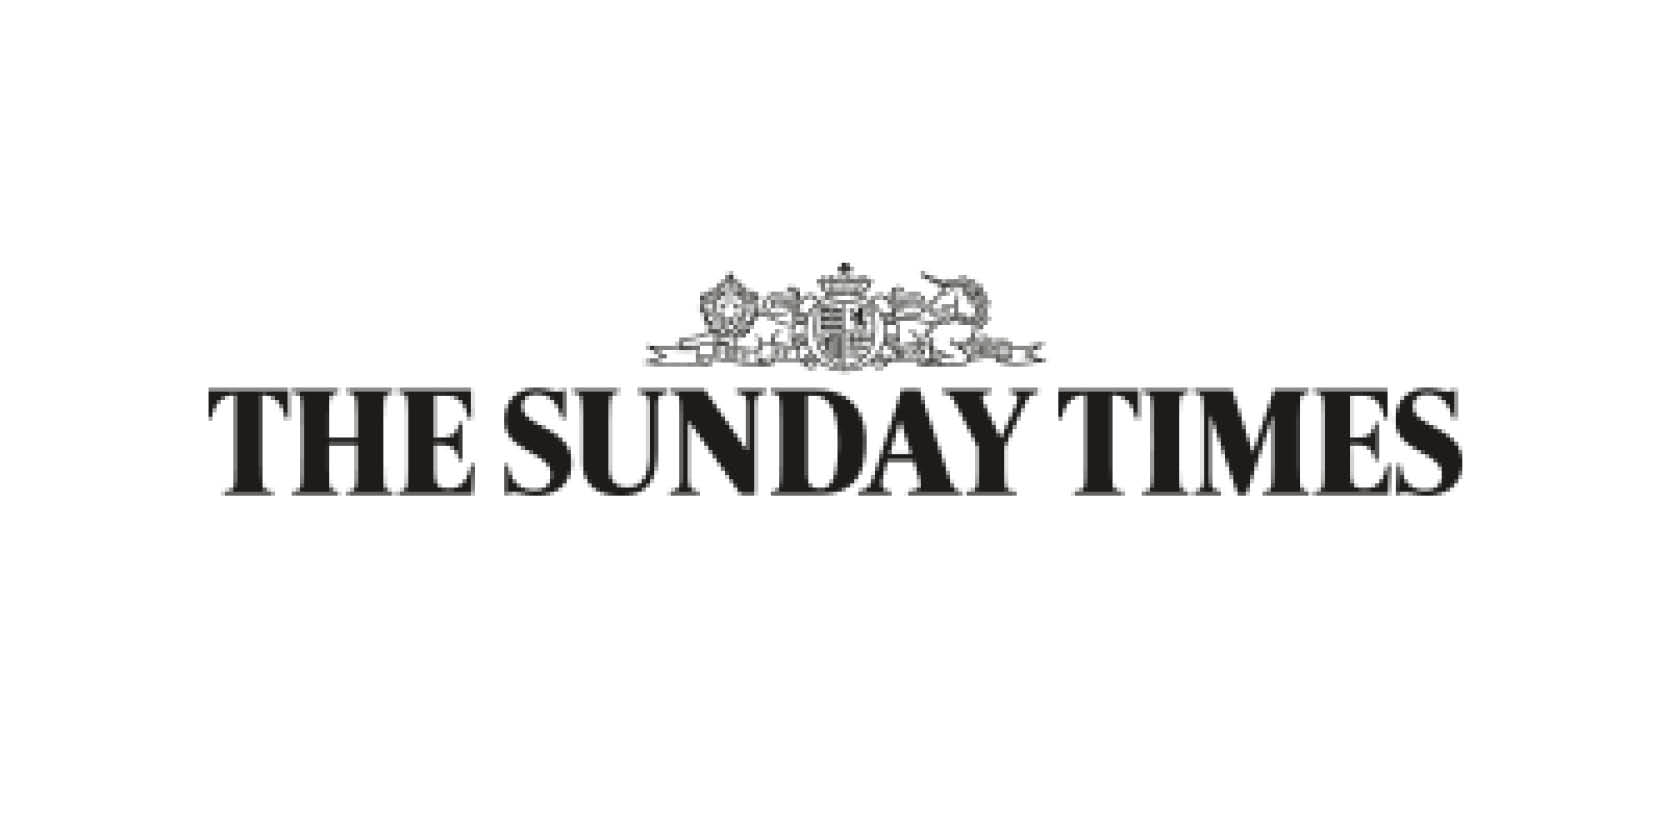 The Sunday Times: New Year's Resolution? Grow fast, go global